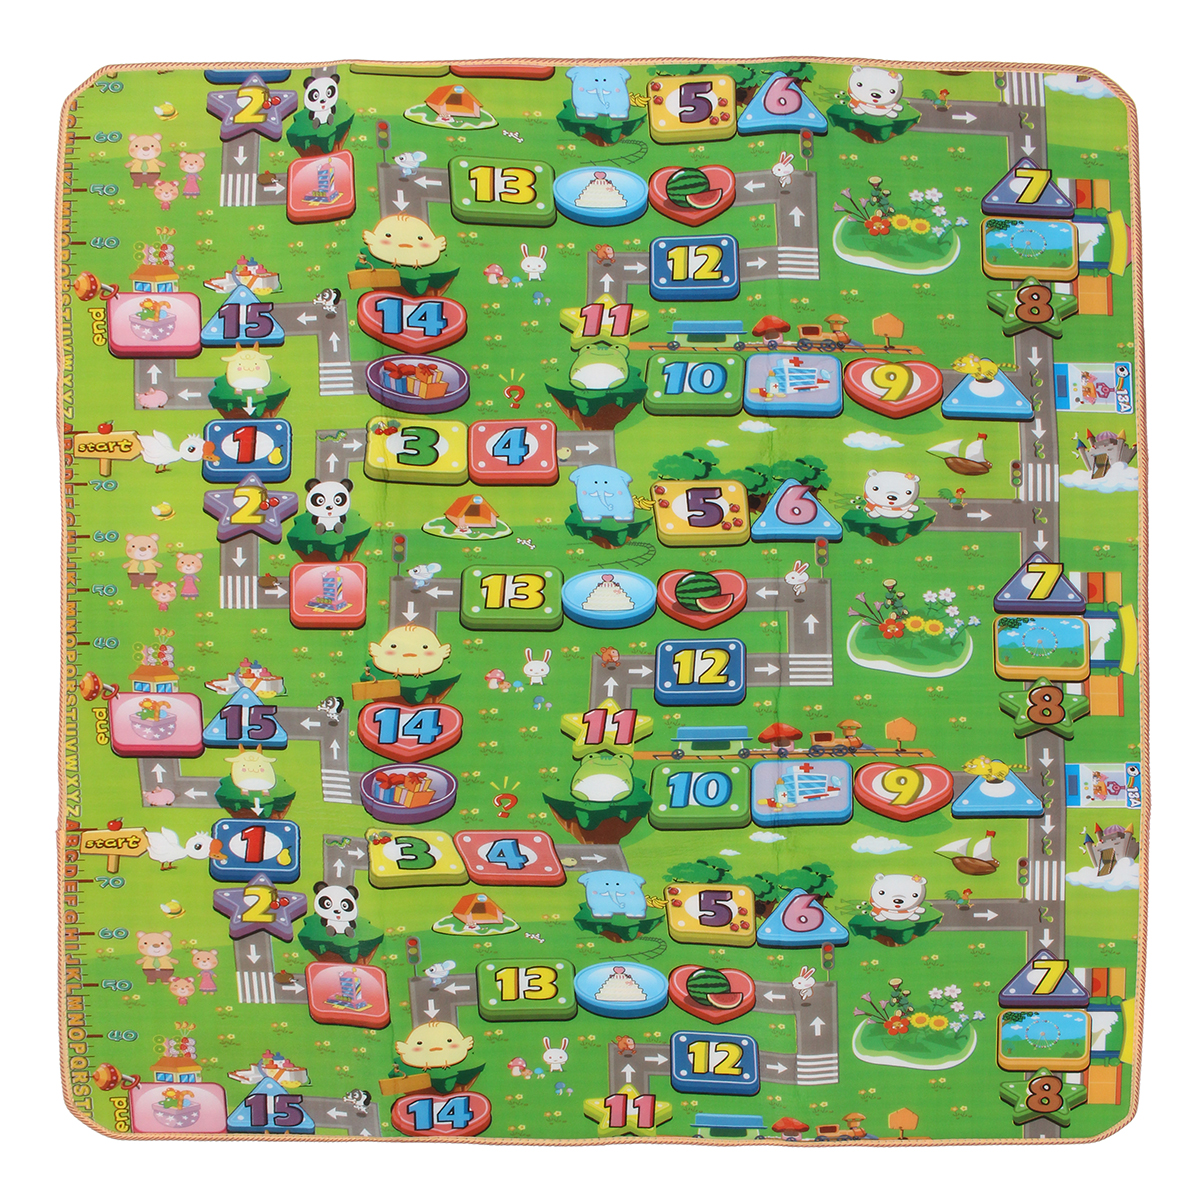 2mx1.8m Double Sides Baby Kids Play Mat Floor Rug Crawling Carpet Picnic Blanket